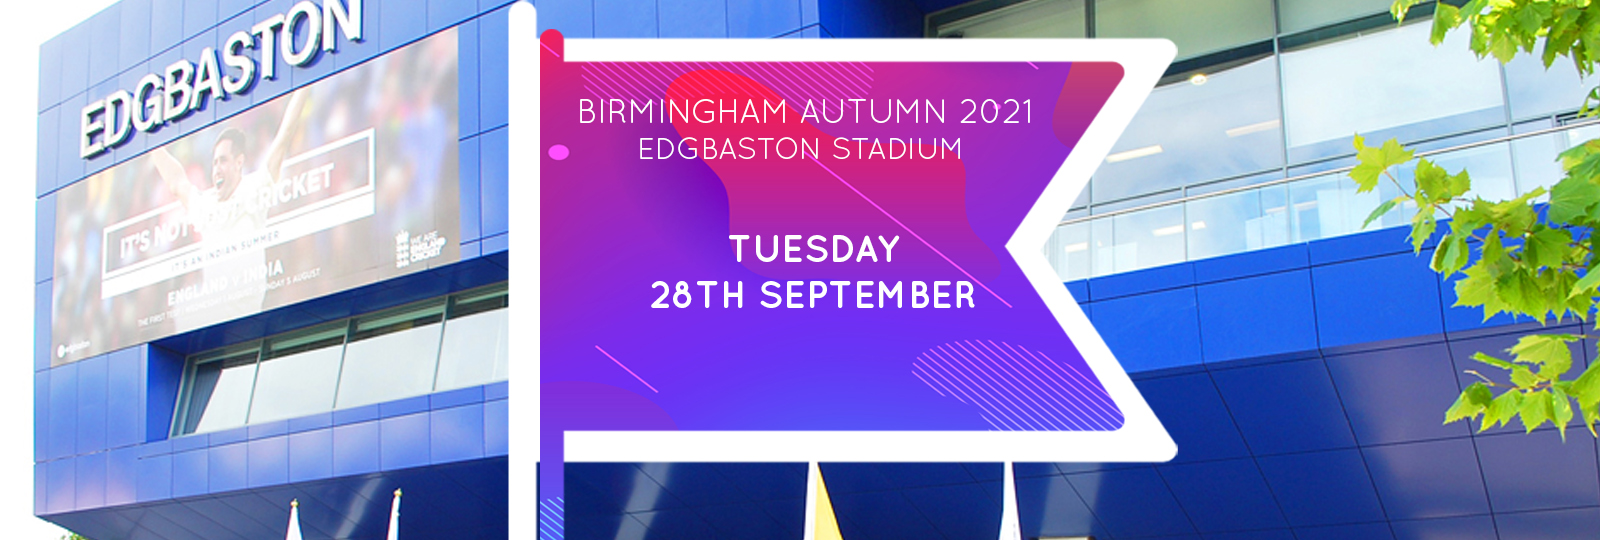 Birmingham Autumn 2021 Fair